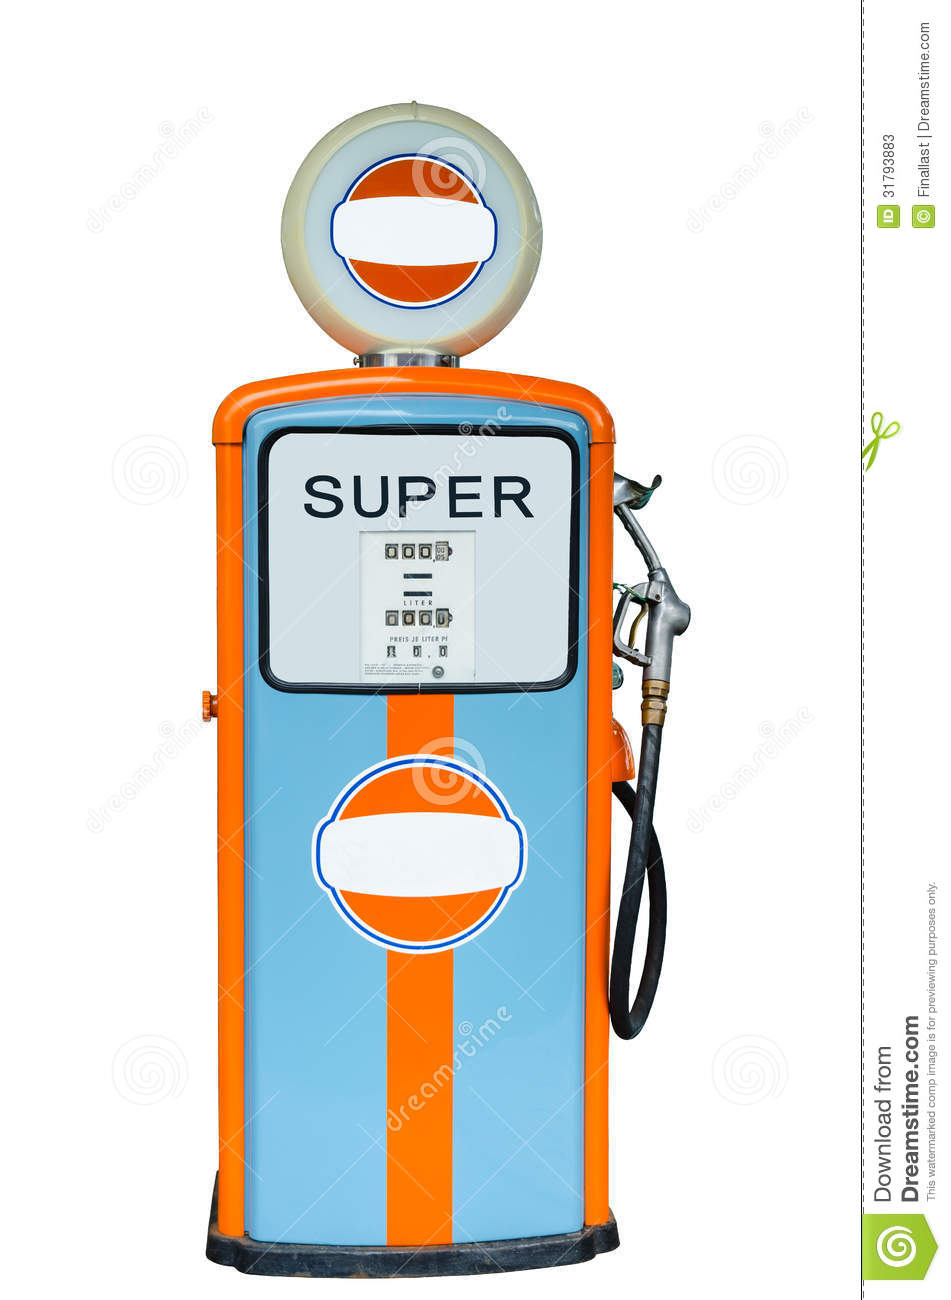 Retro Fuel Dispenser Isolated On White Background Stock Photos.